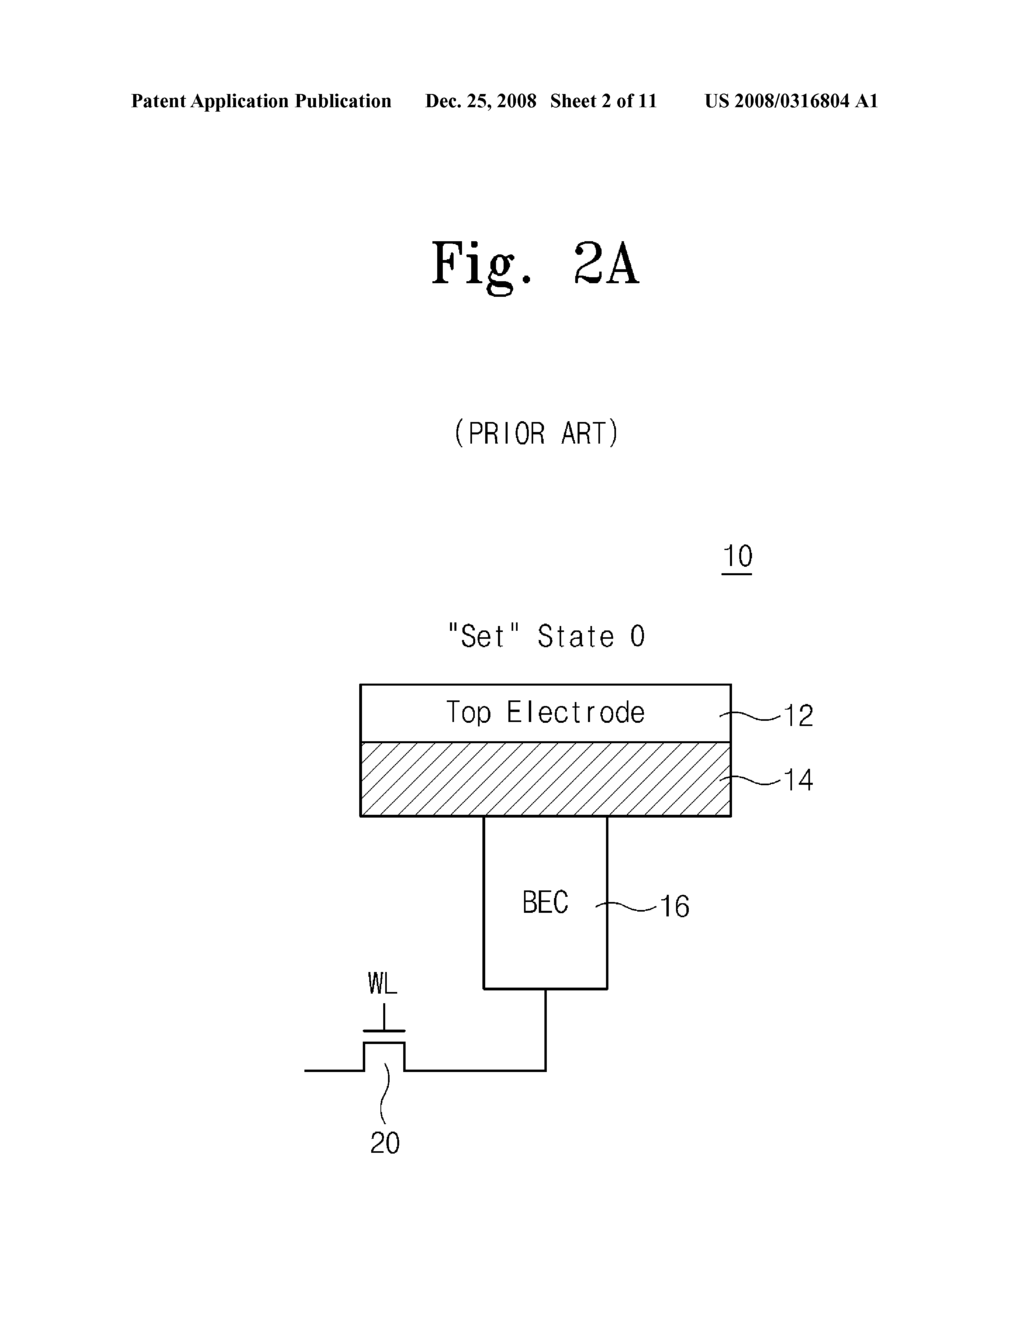 hight resolution of multiple level cell phase change memory devices having controlled resistance drift parameter memory systems employing such devices and methods of reading